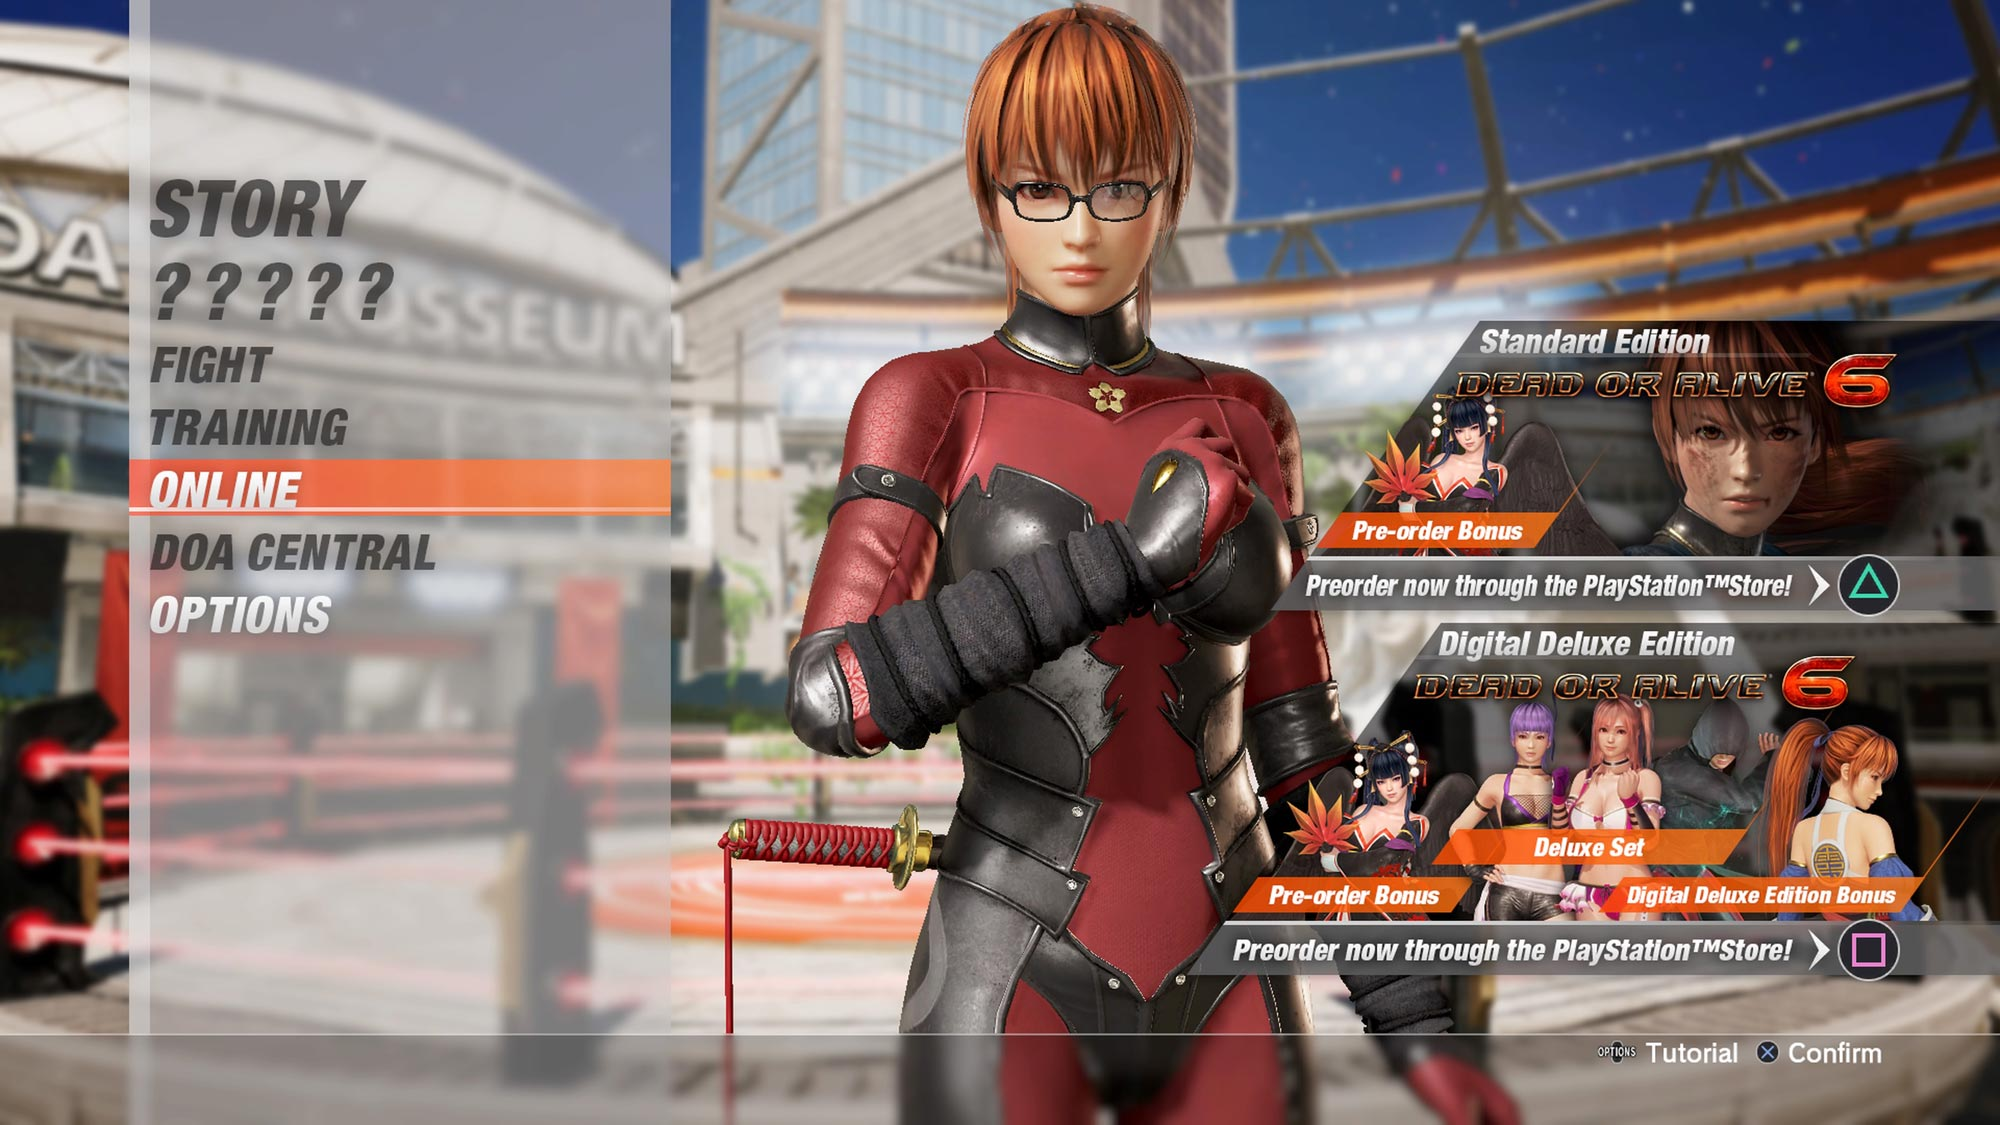 Dead or Alive 6 online beta screenshots 6 out of 6 image gallery